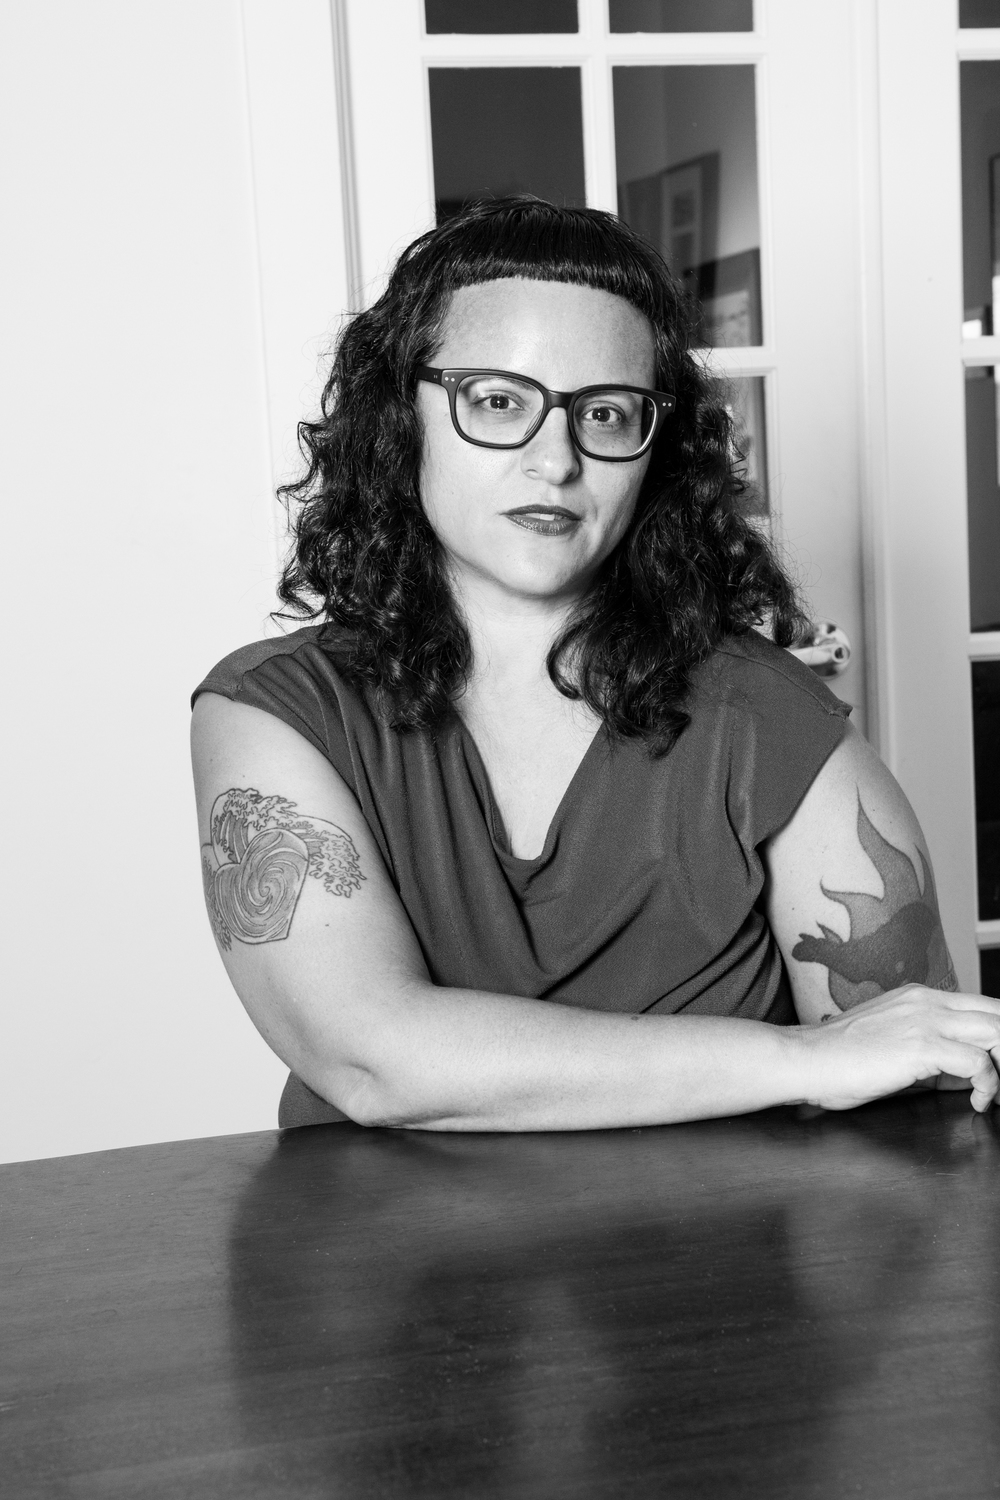 Wendy C. Ortiz is the author of   Excavation: A Memoir  (Future Tense Books, 2014) ,   Hollywood Notebook  (Writ Large Press, 2015)  and the forthcoming   Bruja    (Civil Coping Mechanisms, 2016) . Her work has appeared in  The New York Times, McSweeney's Internet Tendency ,  Hazlitt, Vol. 1 Brooklyn , and  The Nervous Breakdown , among other places. She lives in Los Angeles.